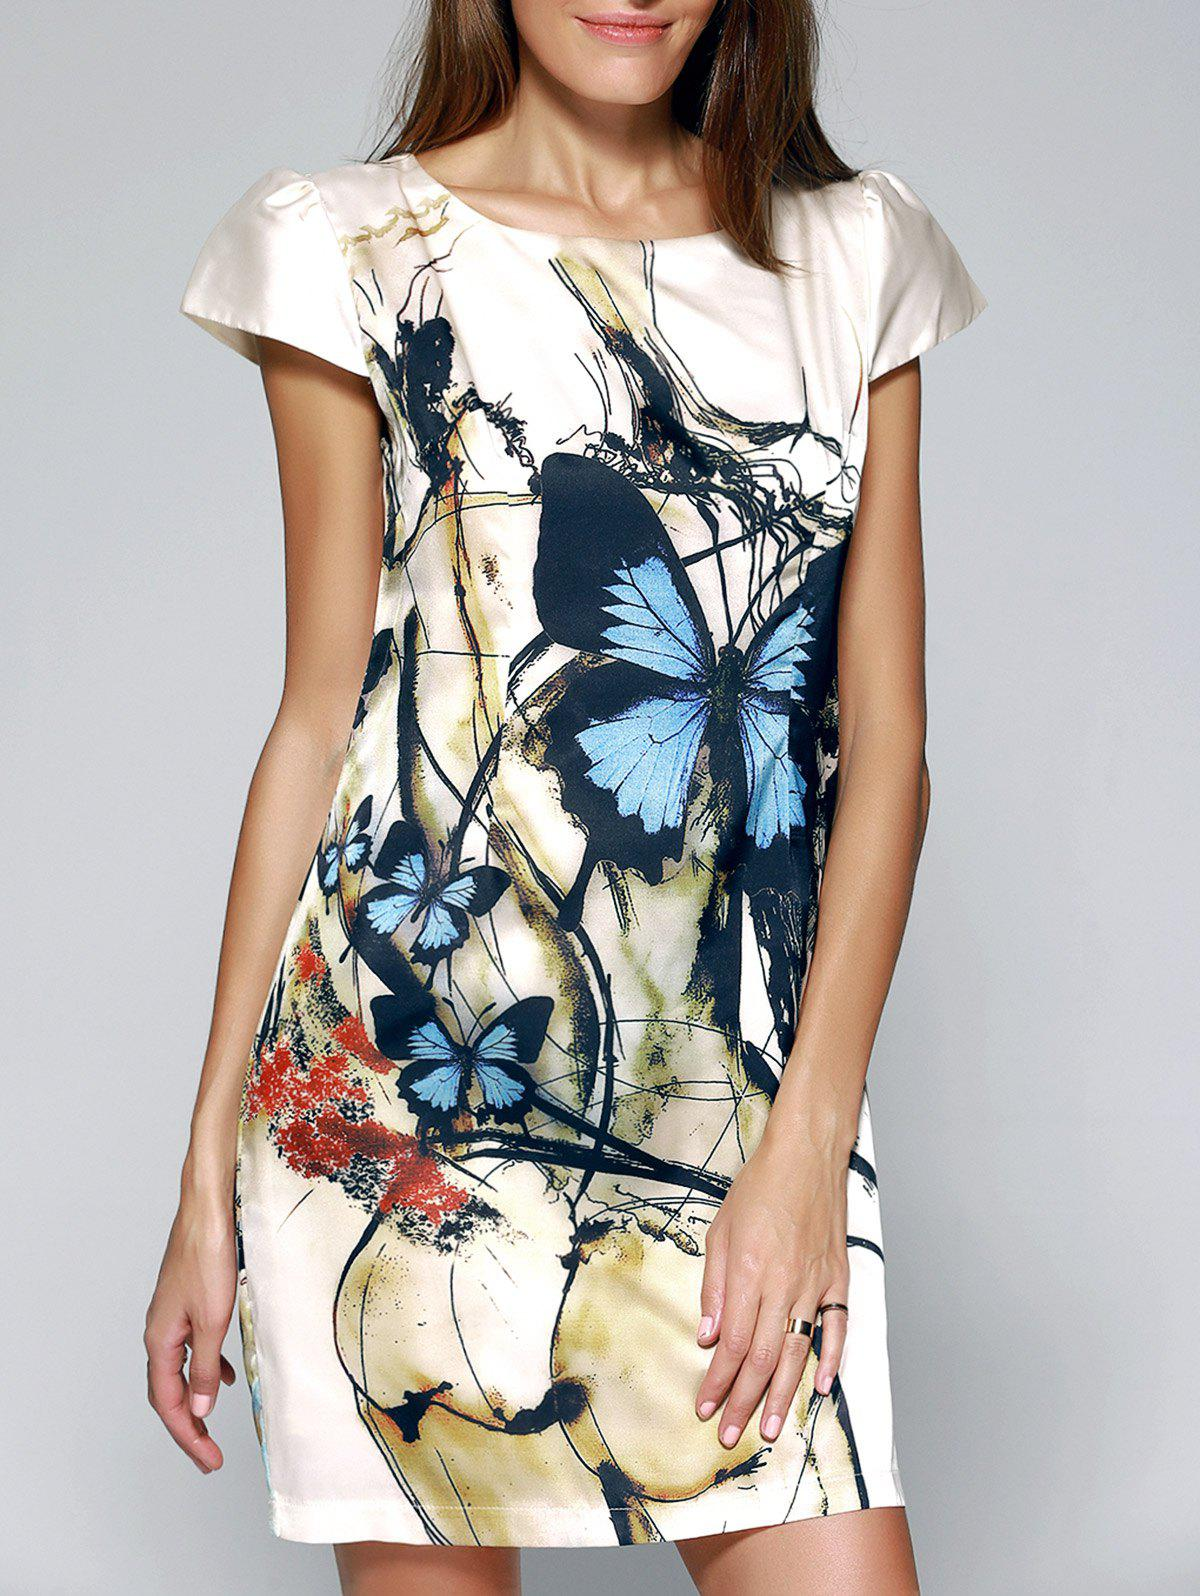 Graceful Butterfly Print Bodycon Dress For Women - COLORMIX 3XL